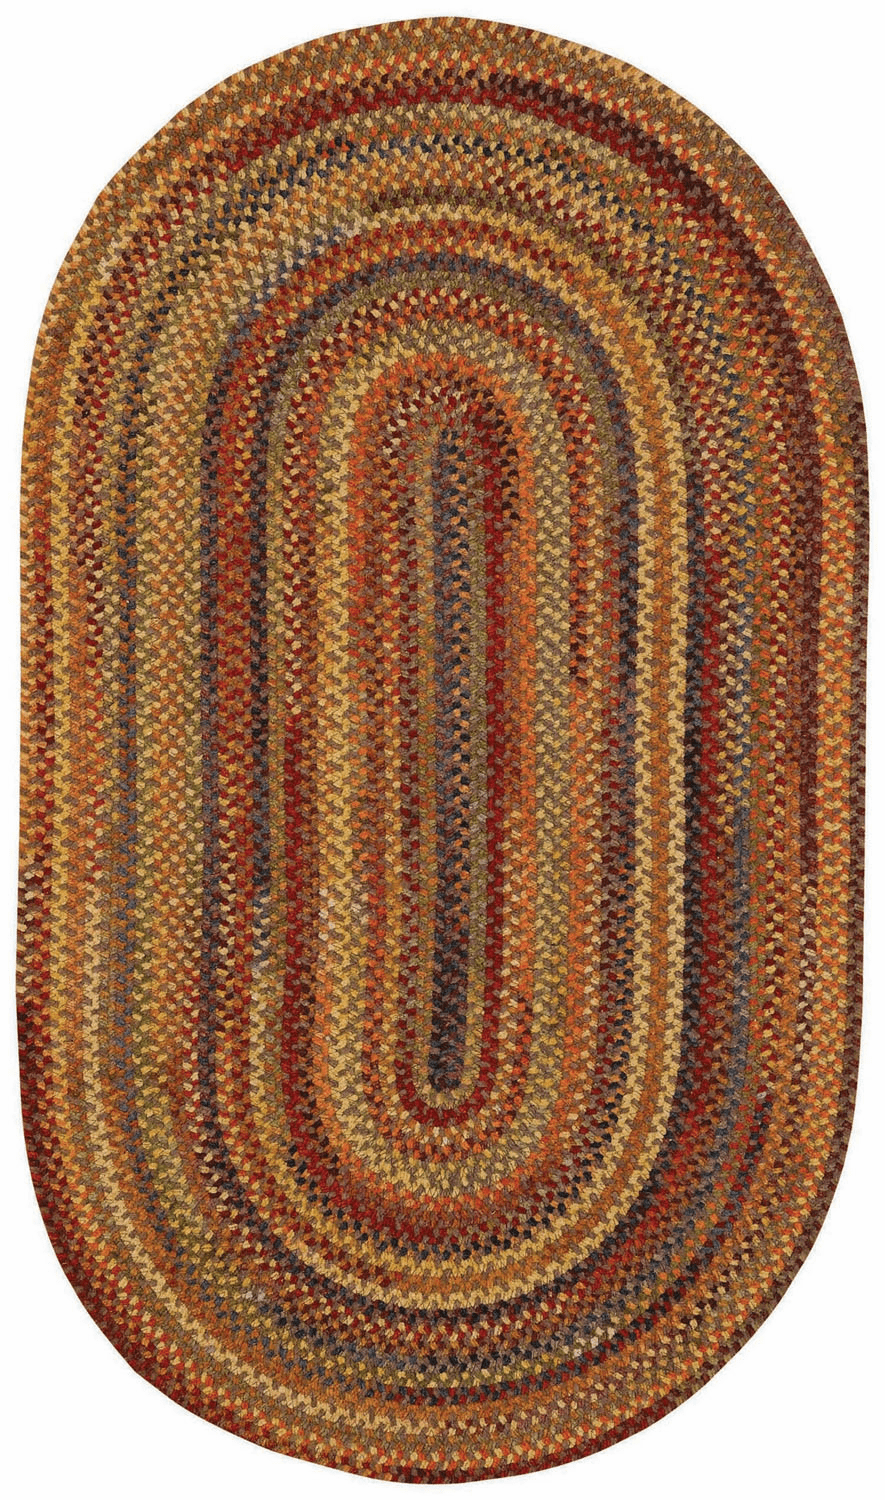 Hand-Braided Grey Rug